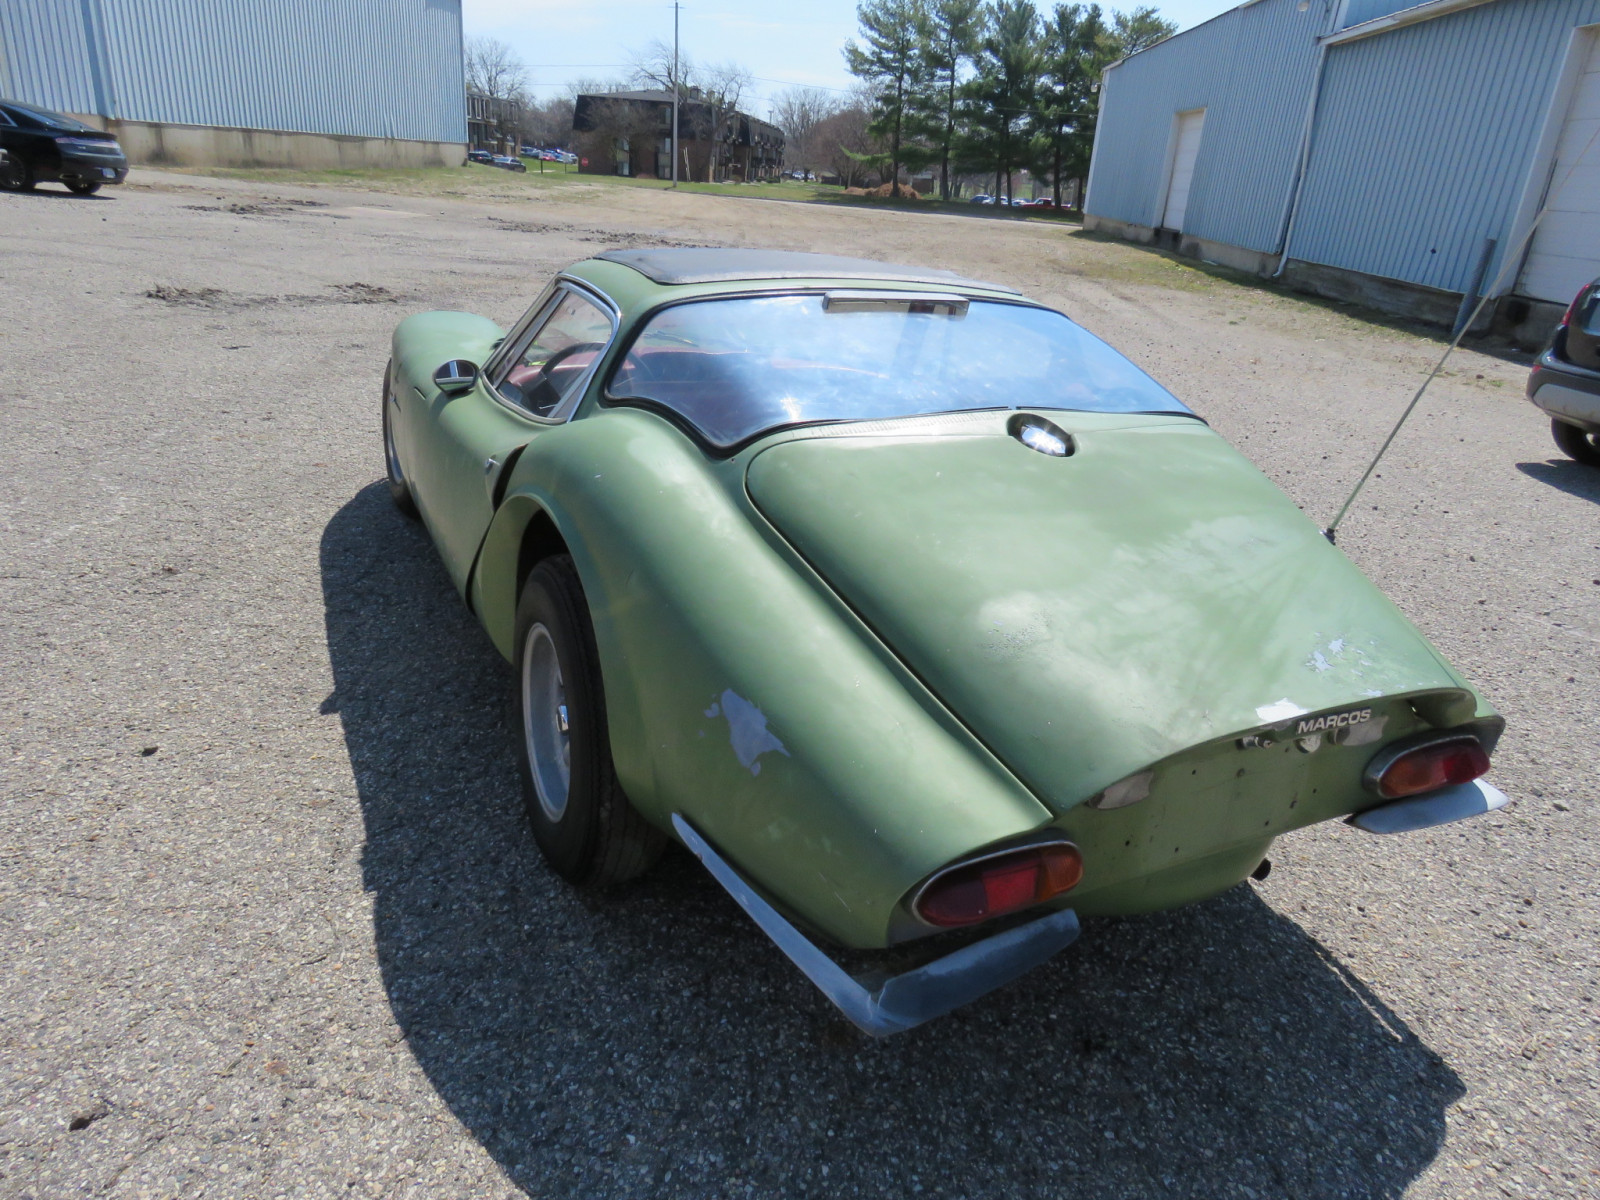 1969 Marcos Model 1600 Coupe - Image 7